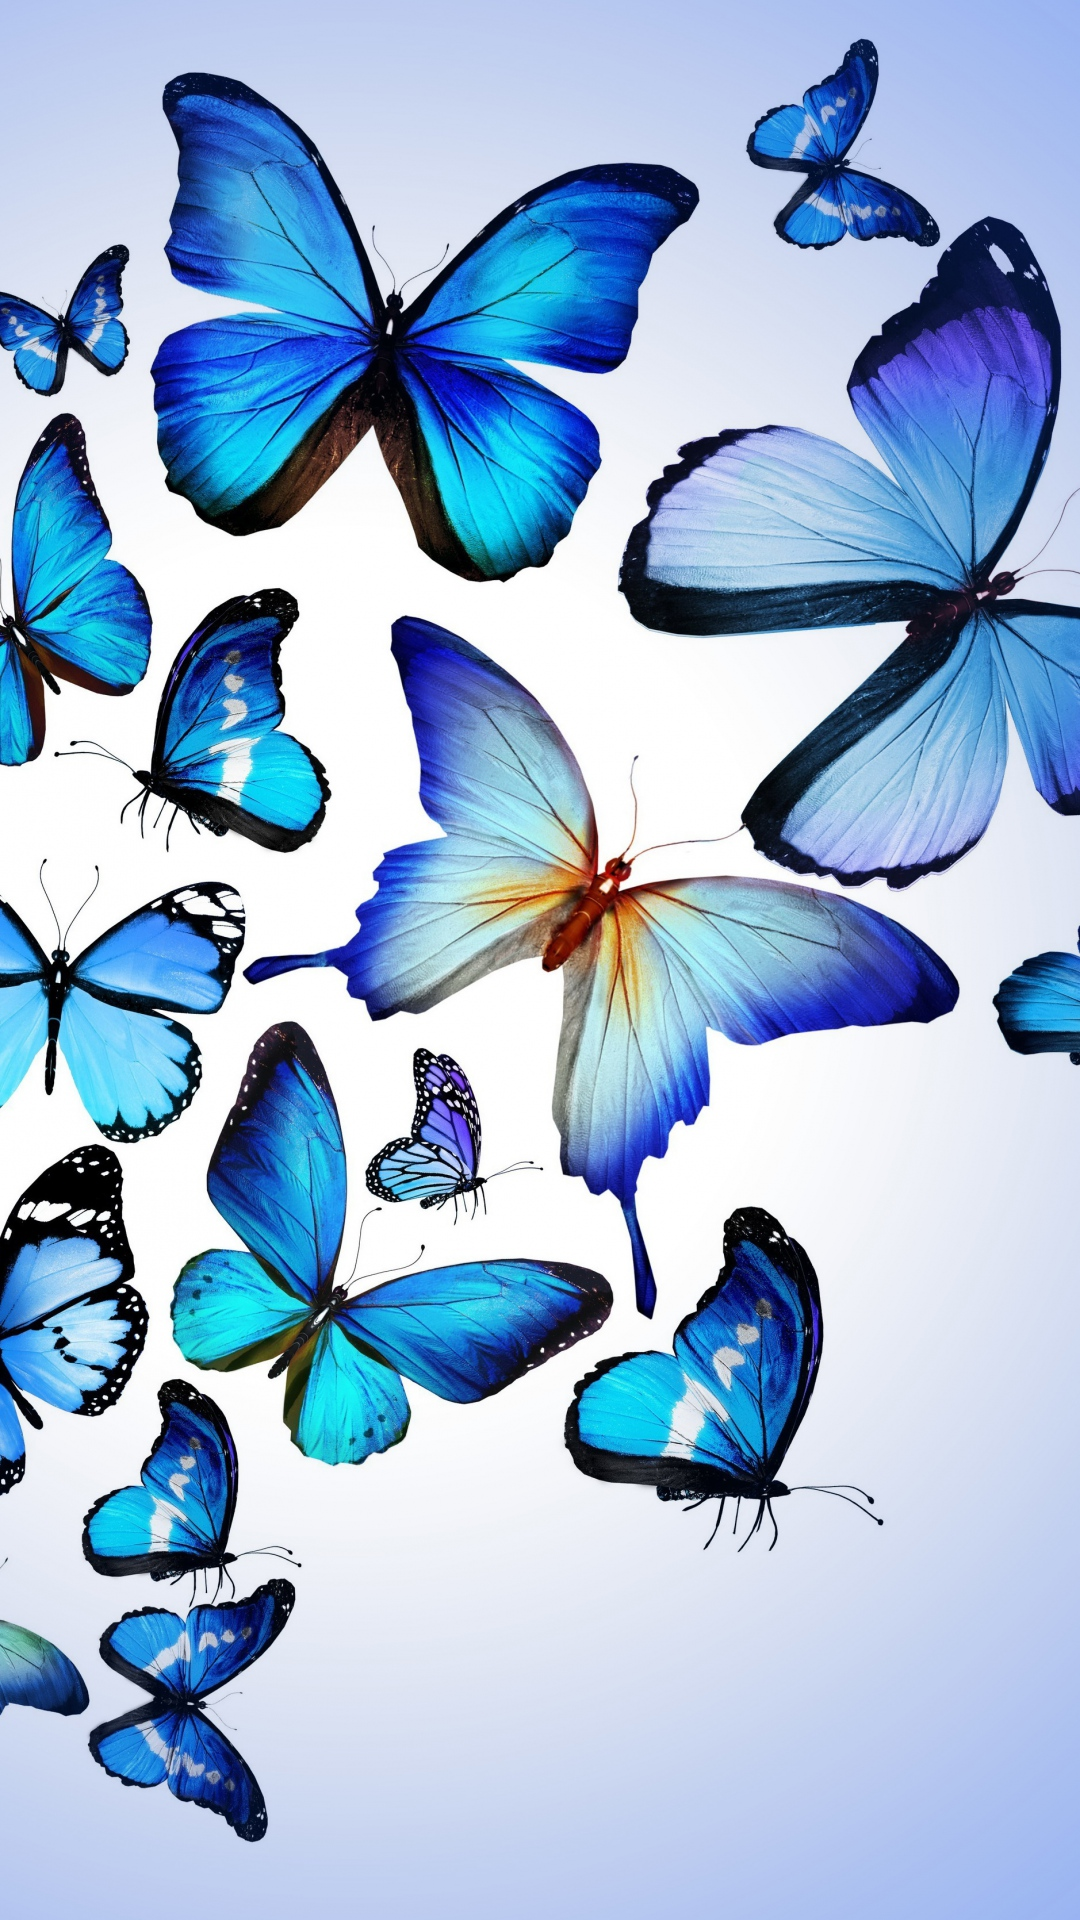 Butterfly-Colorful-Blue-Drawing-Art-Beautiful-iPhone-wallpaper-wp3803522